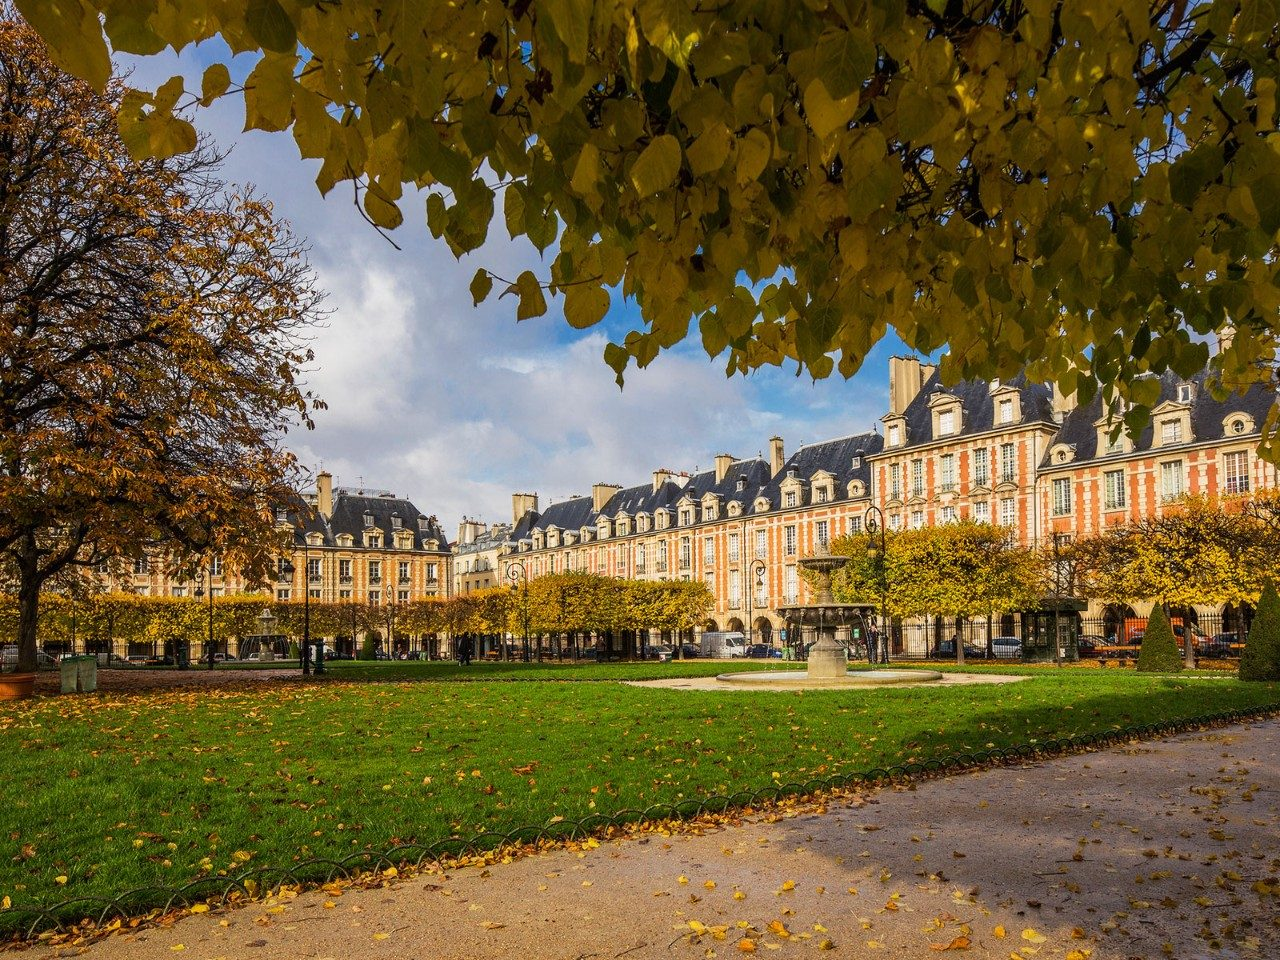 The Marais district of Paris